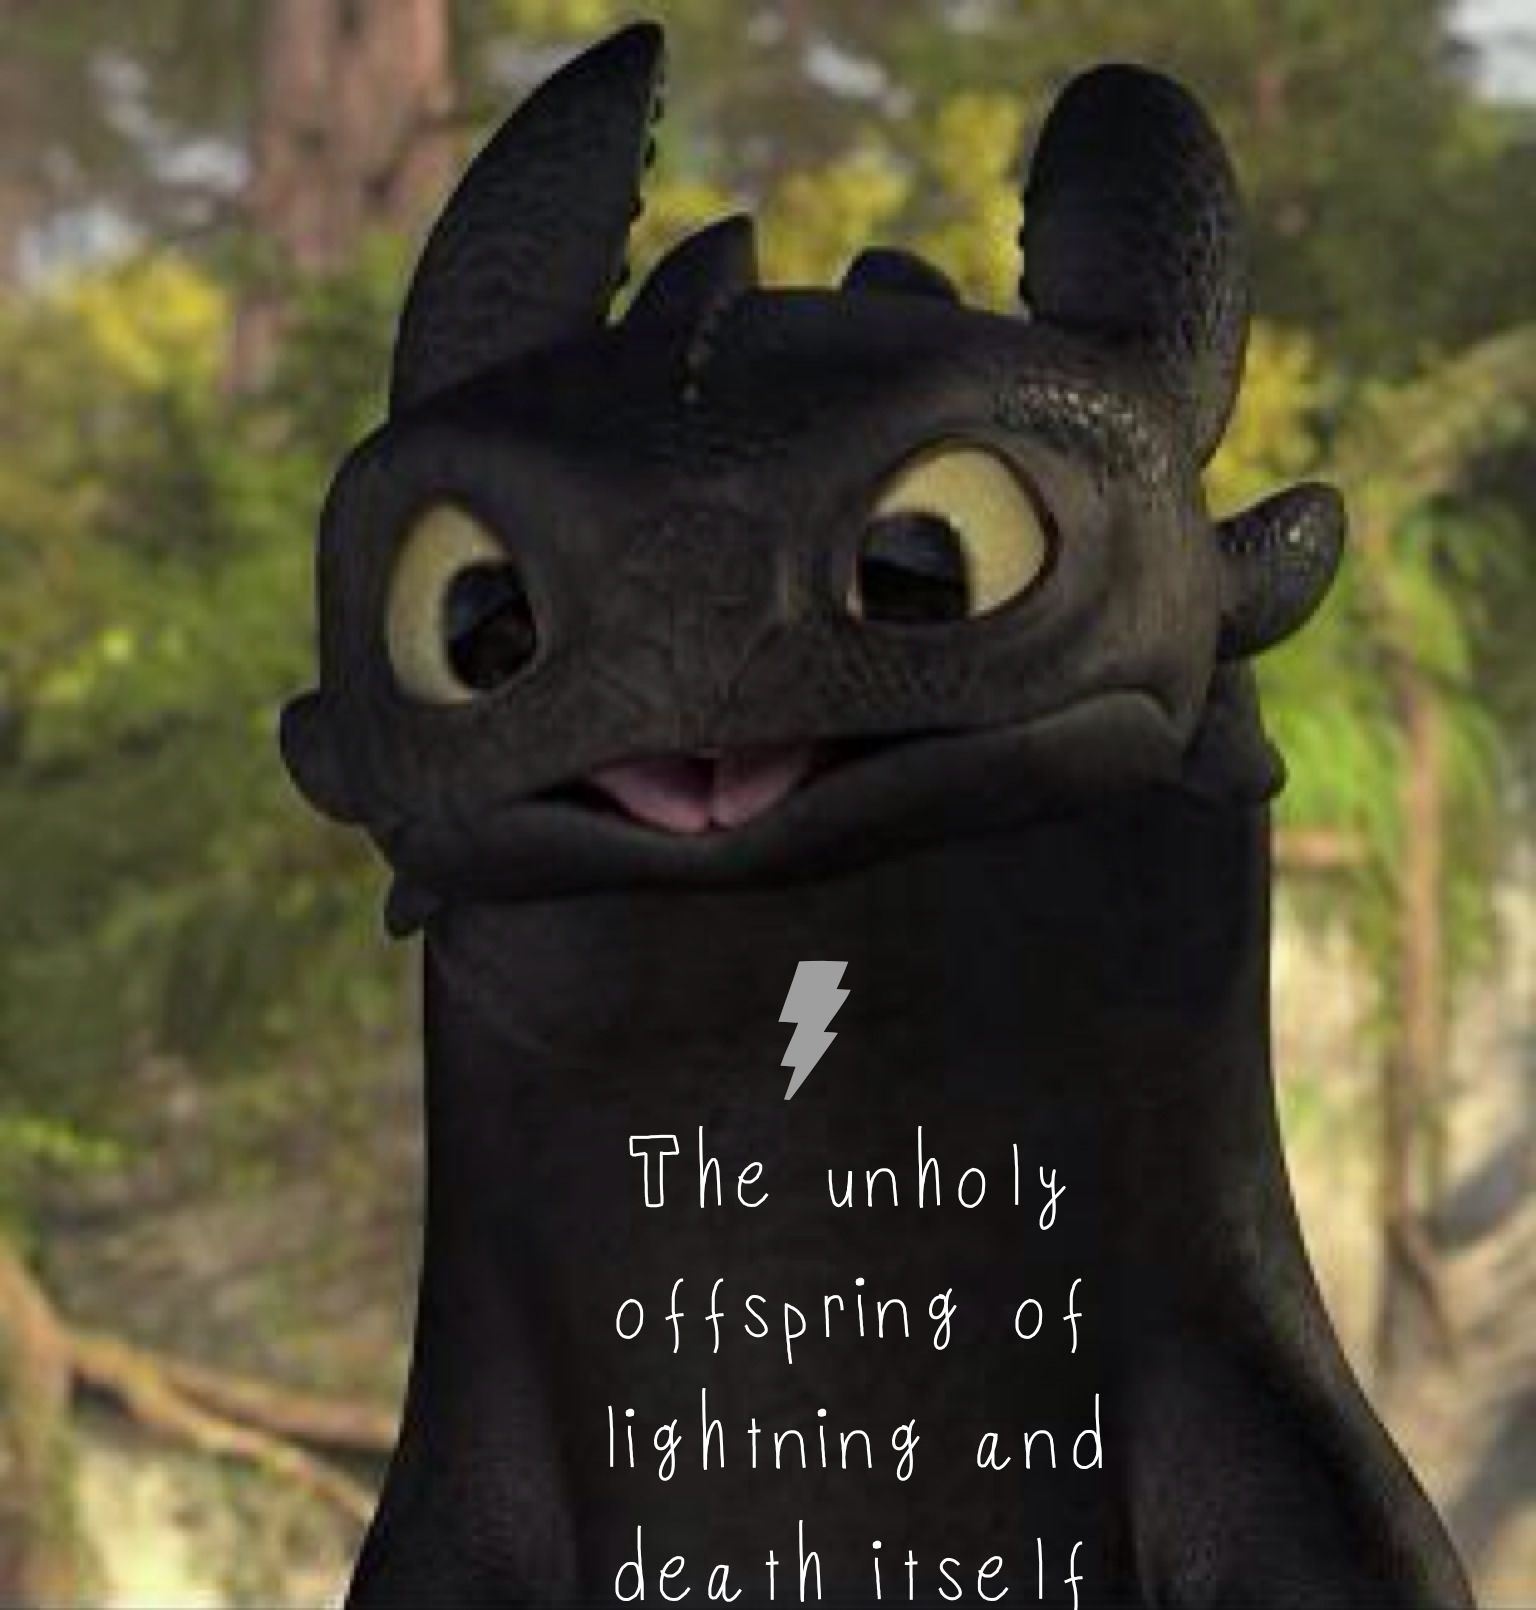 The unholy offspring of lightning and death itself toothless how the unholy offspring of lightning and death itself toothless how to train your dragon ccuart Gallery